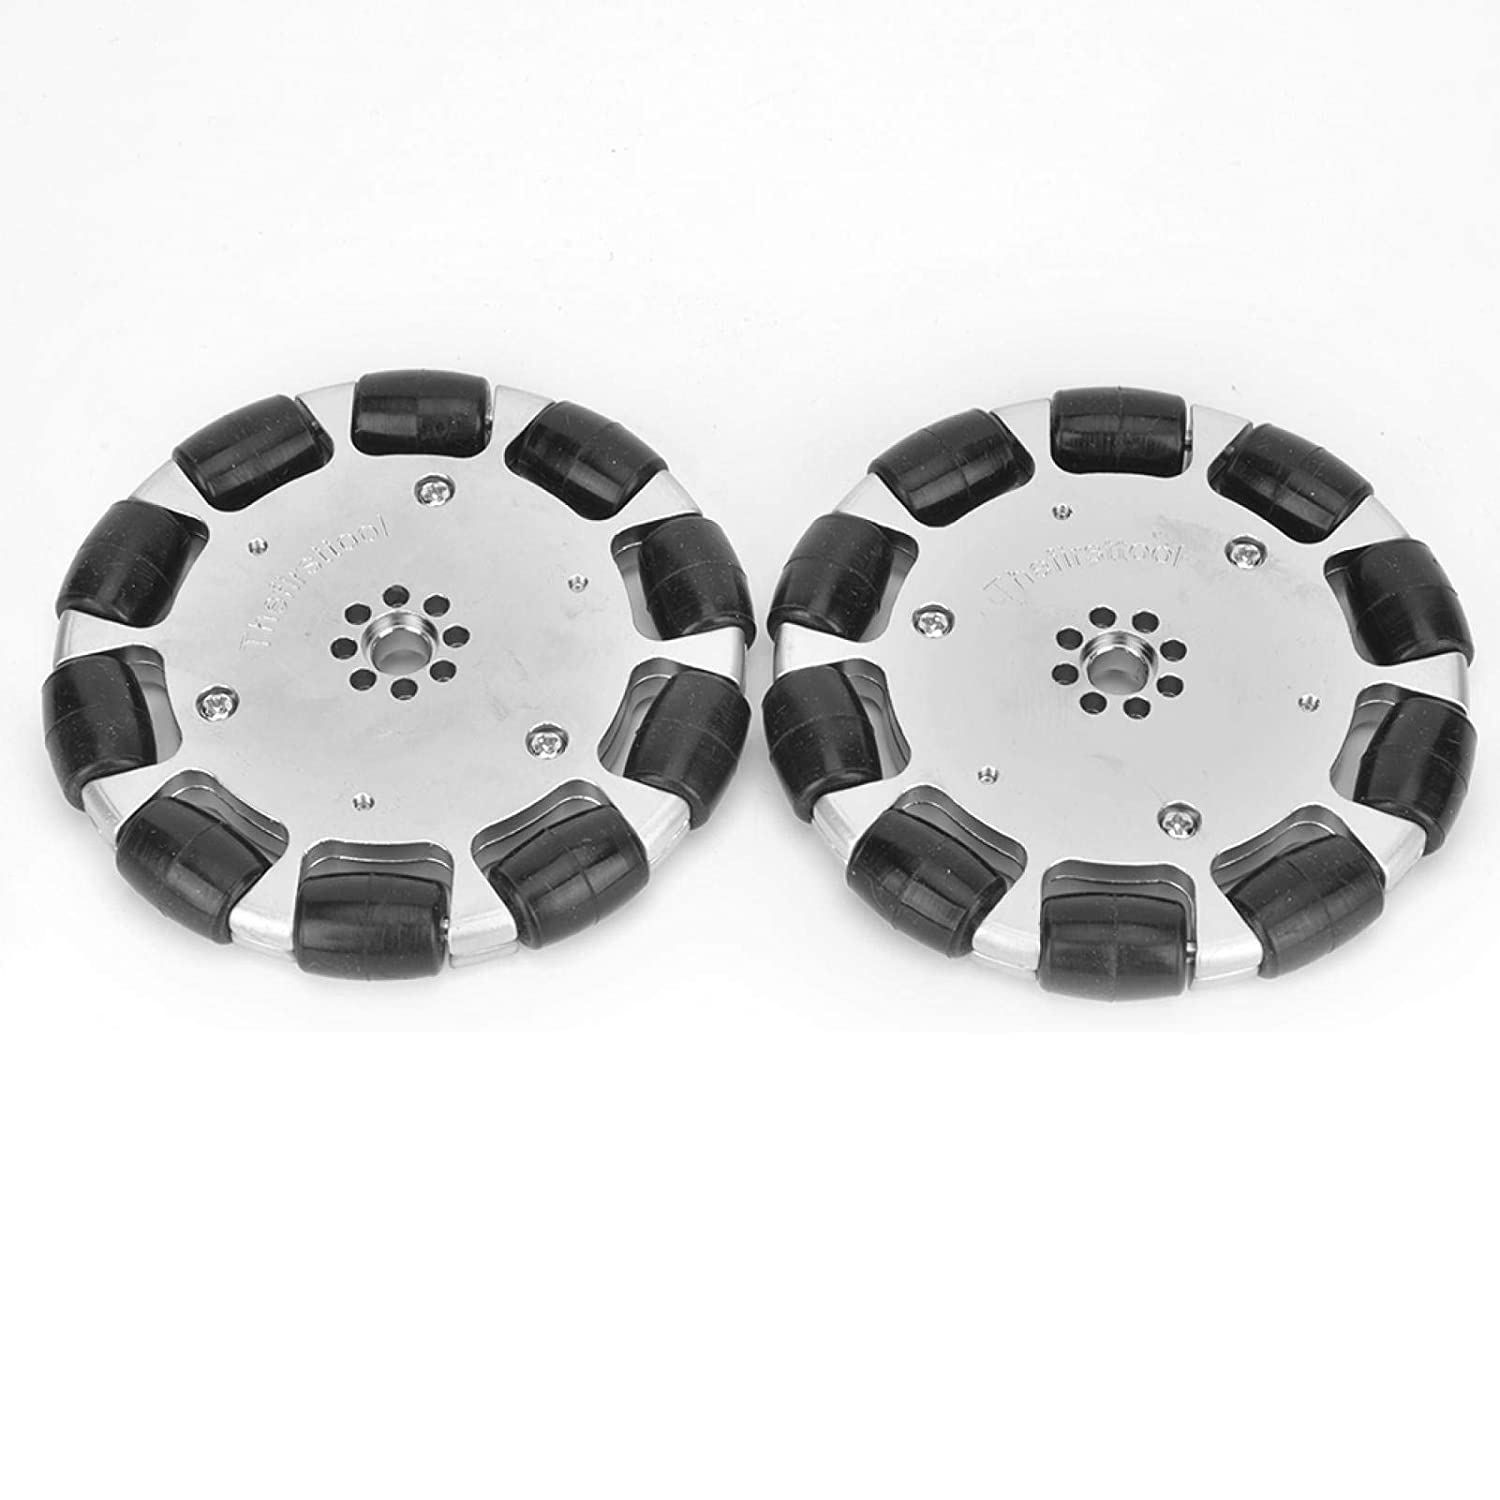 4 Inches Omnidirectional Wheel Omni-Directional Ro Small Max 49% Ranking TOP9 OFF